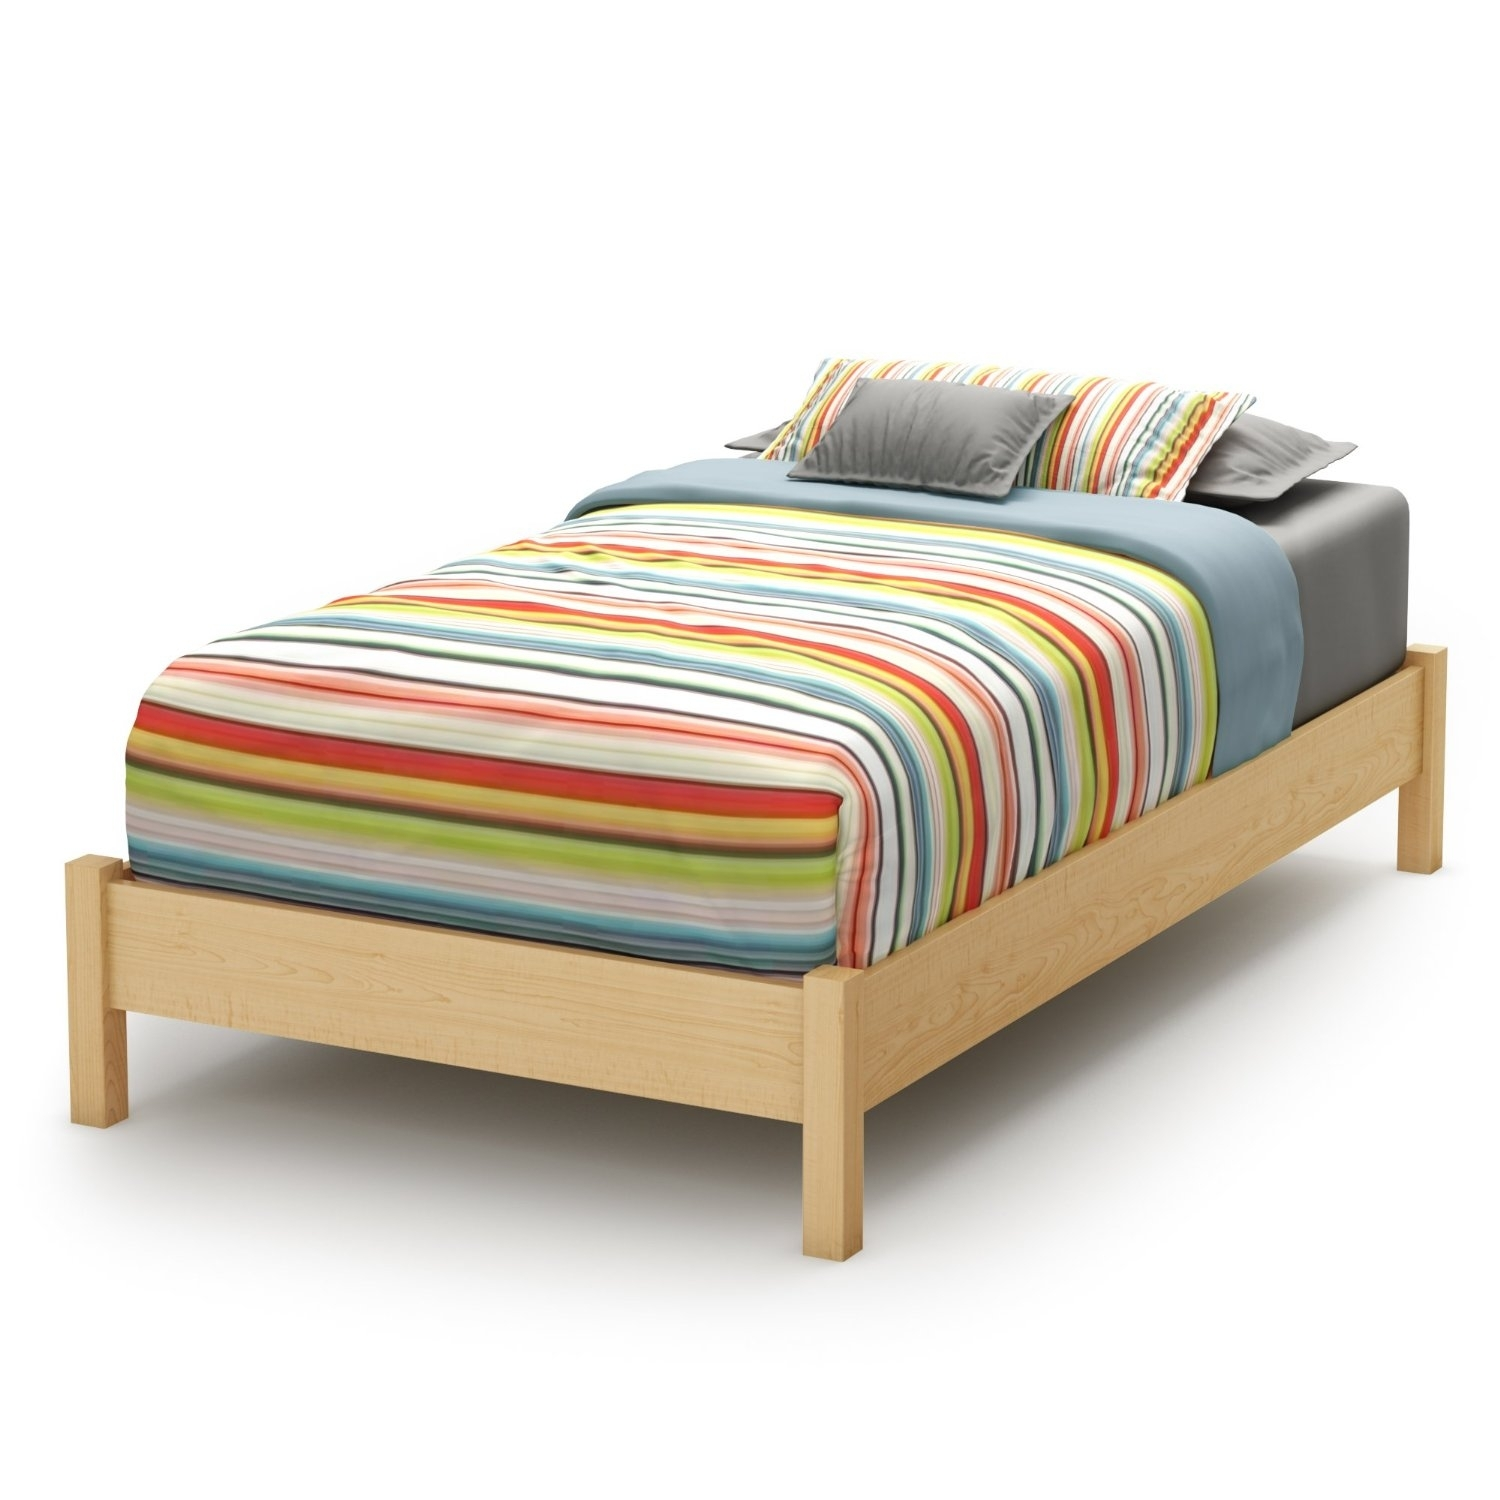 Twin Size Wooden Bed Frame